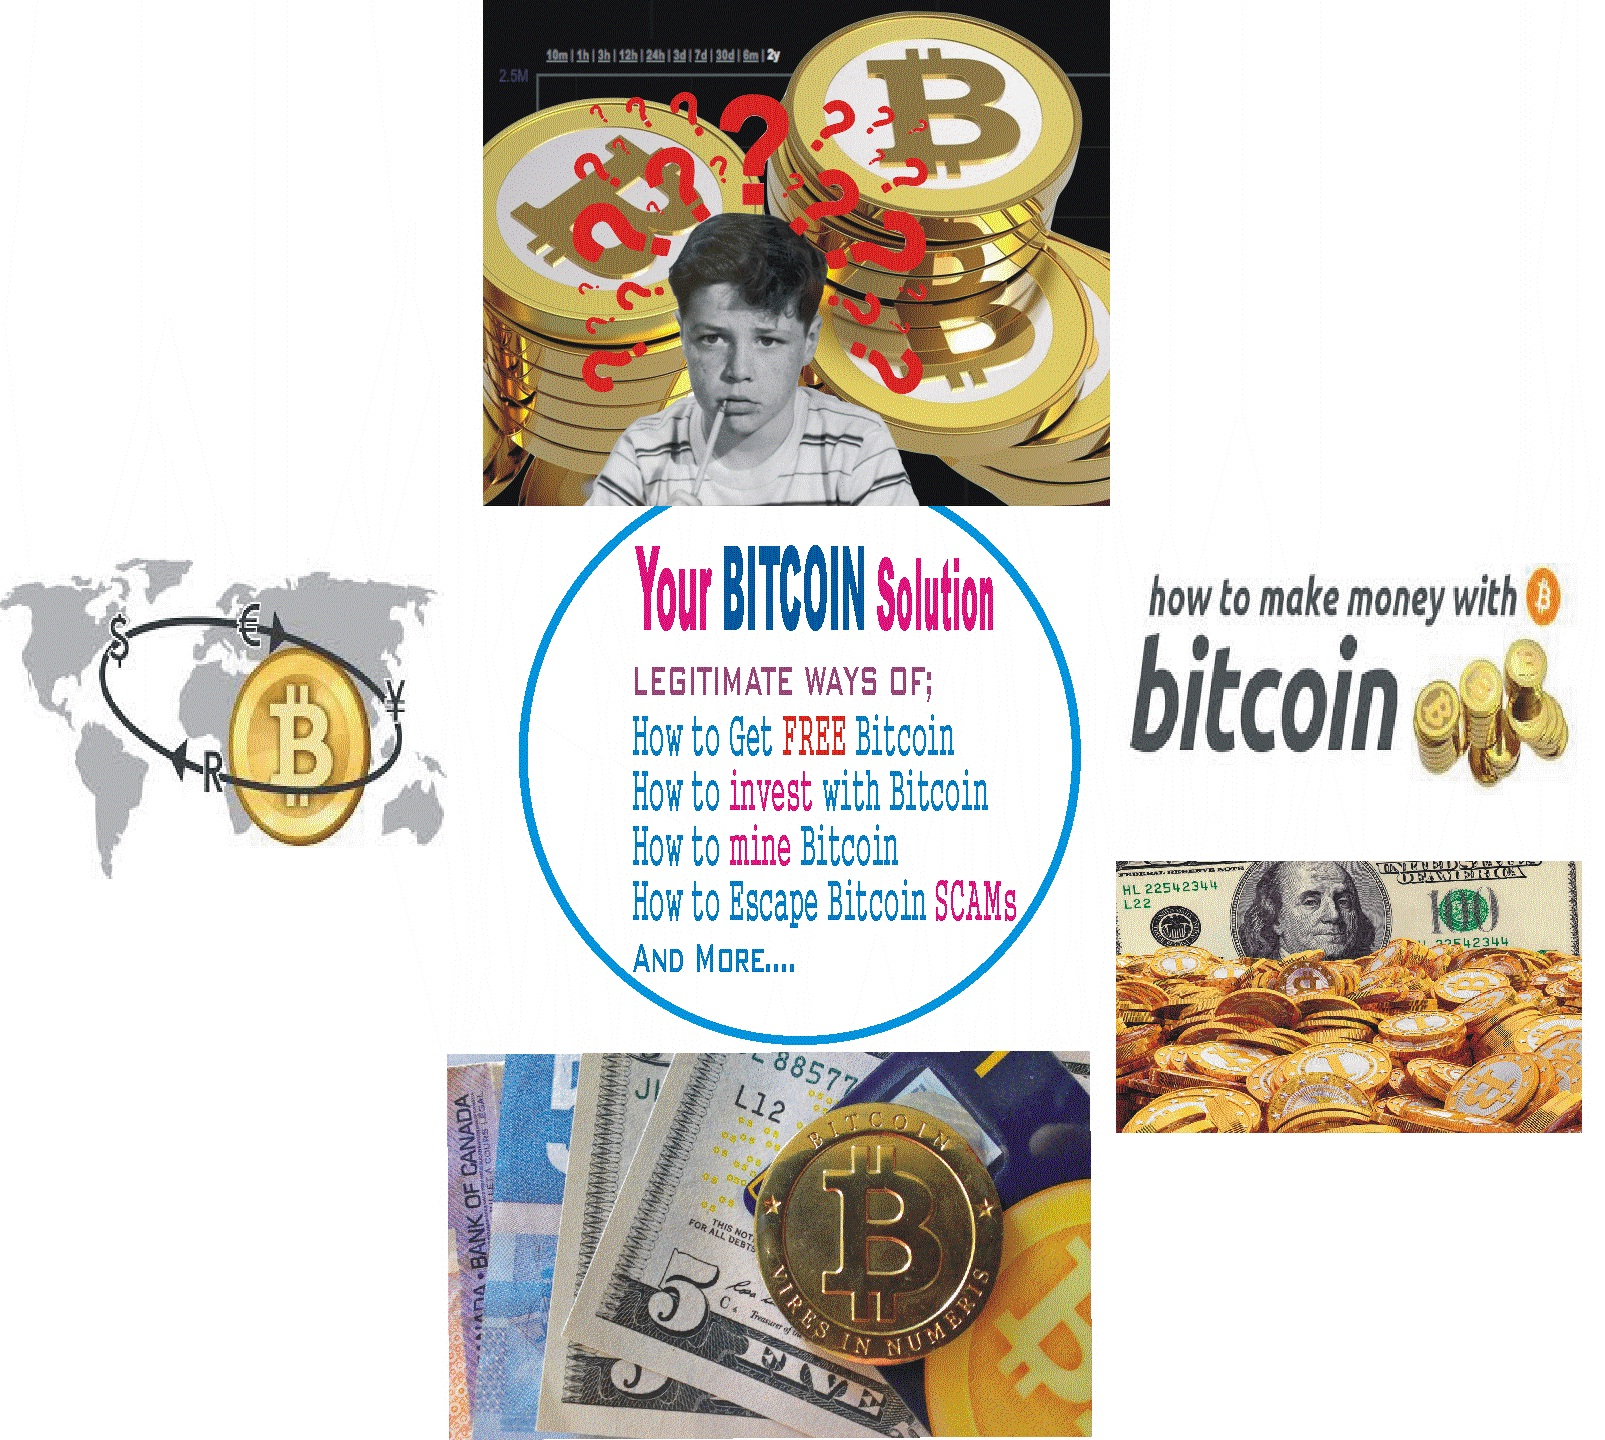 Legitimate BITCOIN Solution : Give You Solutions To Your Bitcoin Challenges - Best Kept Secret -LIMITED Time Offer!!!